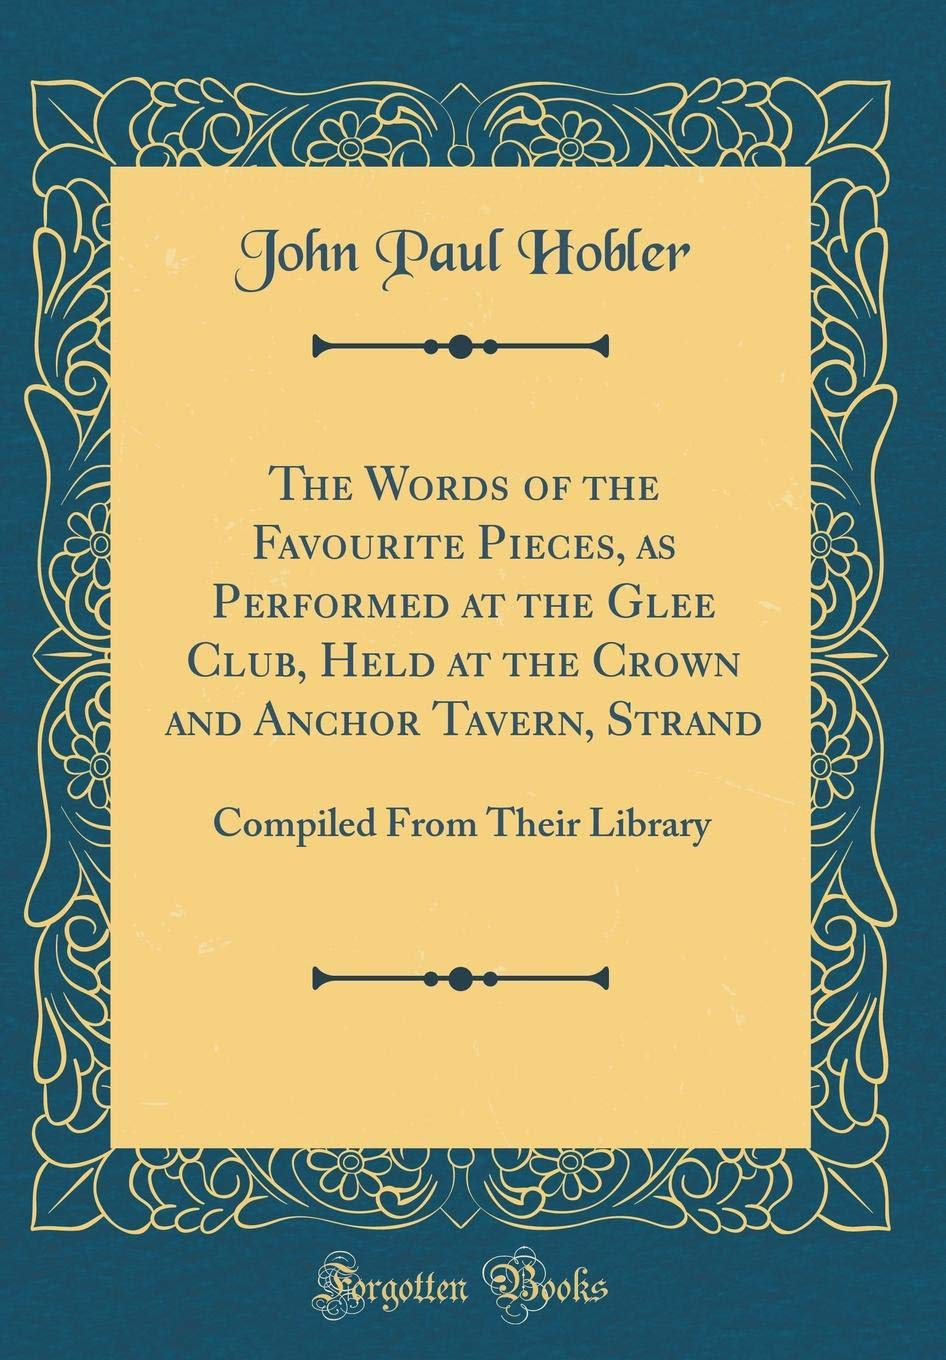 The Words of the Favourite Pieces, as Performed at the Glee Club, Held at the Crown and Anchor Tavern, Strand: Compiled From Their Library (Classic Reprint) ebook